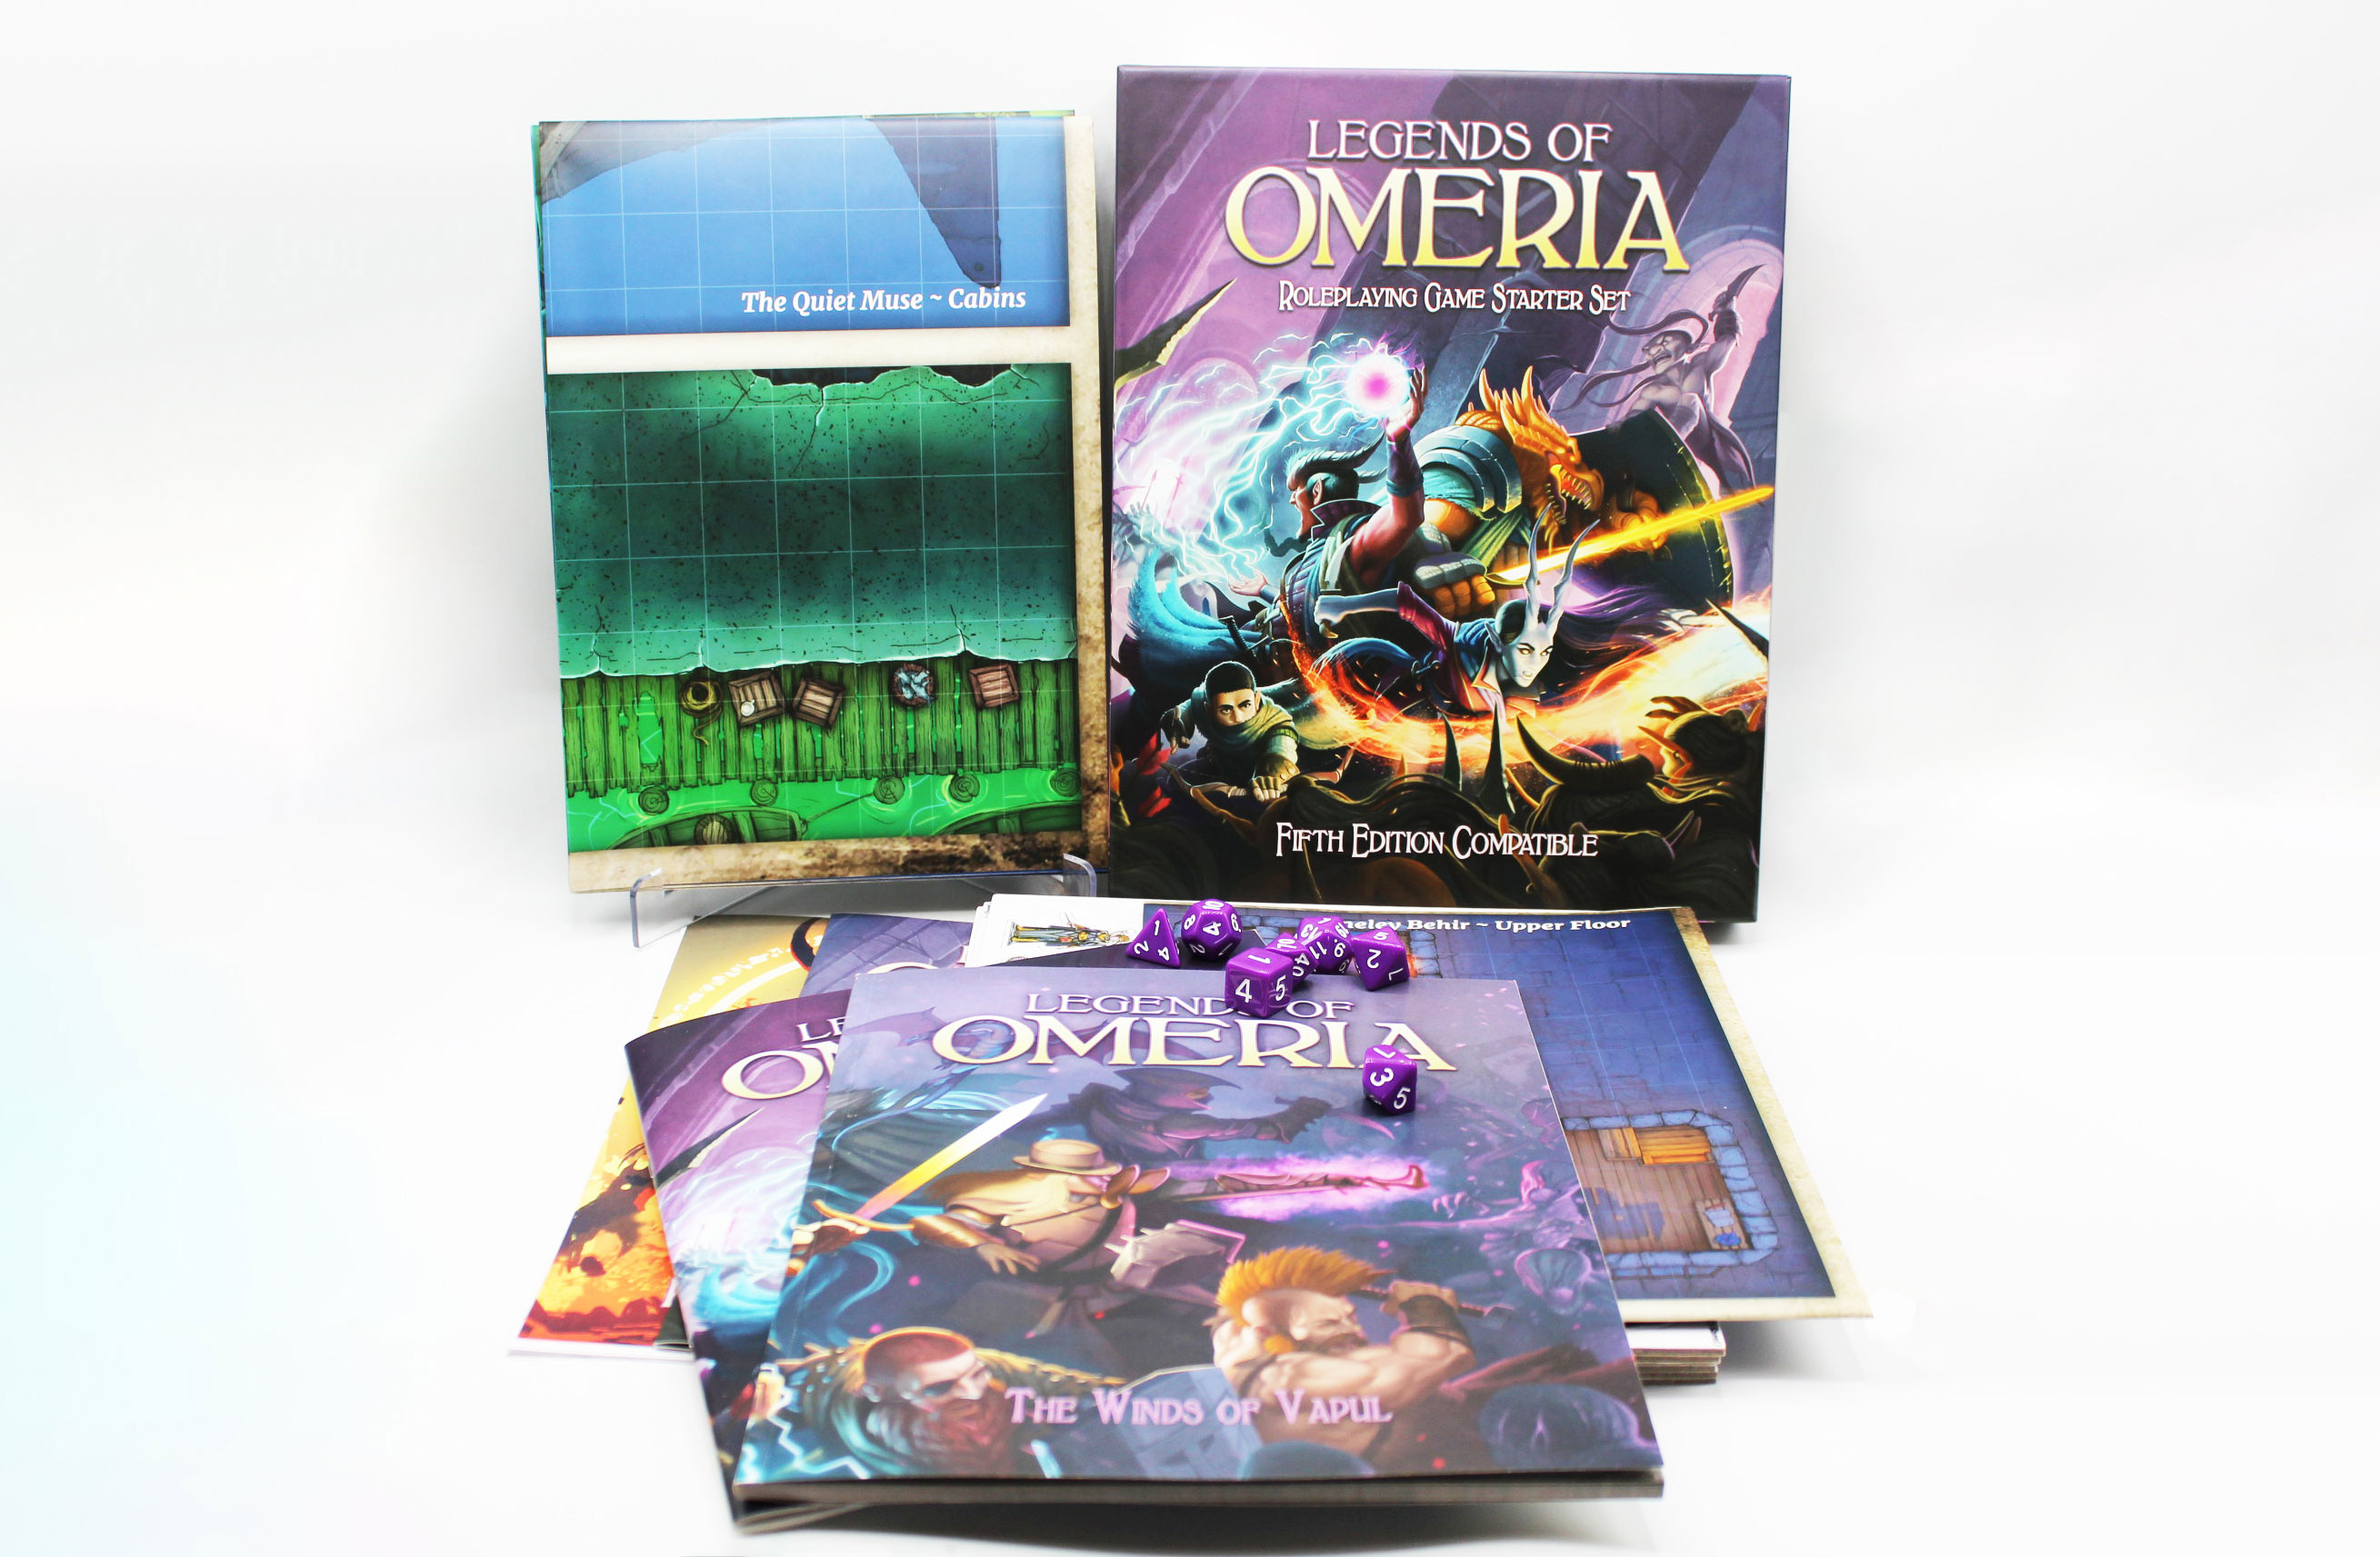 Legends of Omeria Unboxing Video